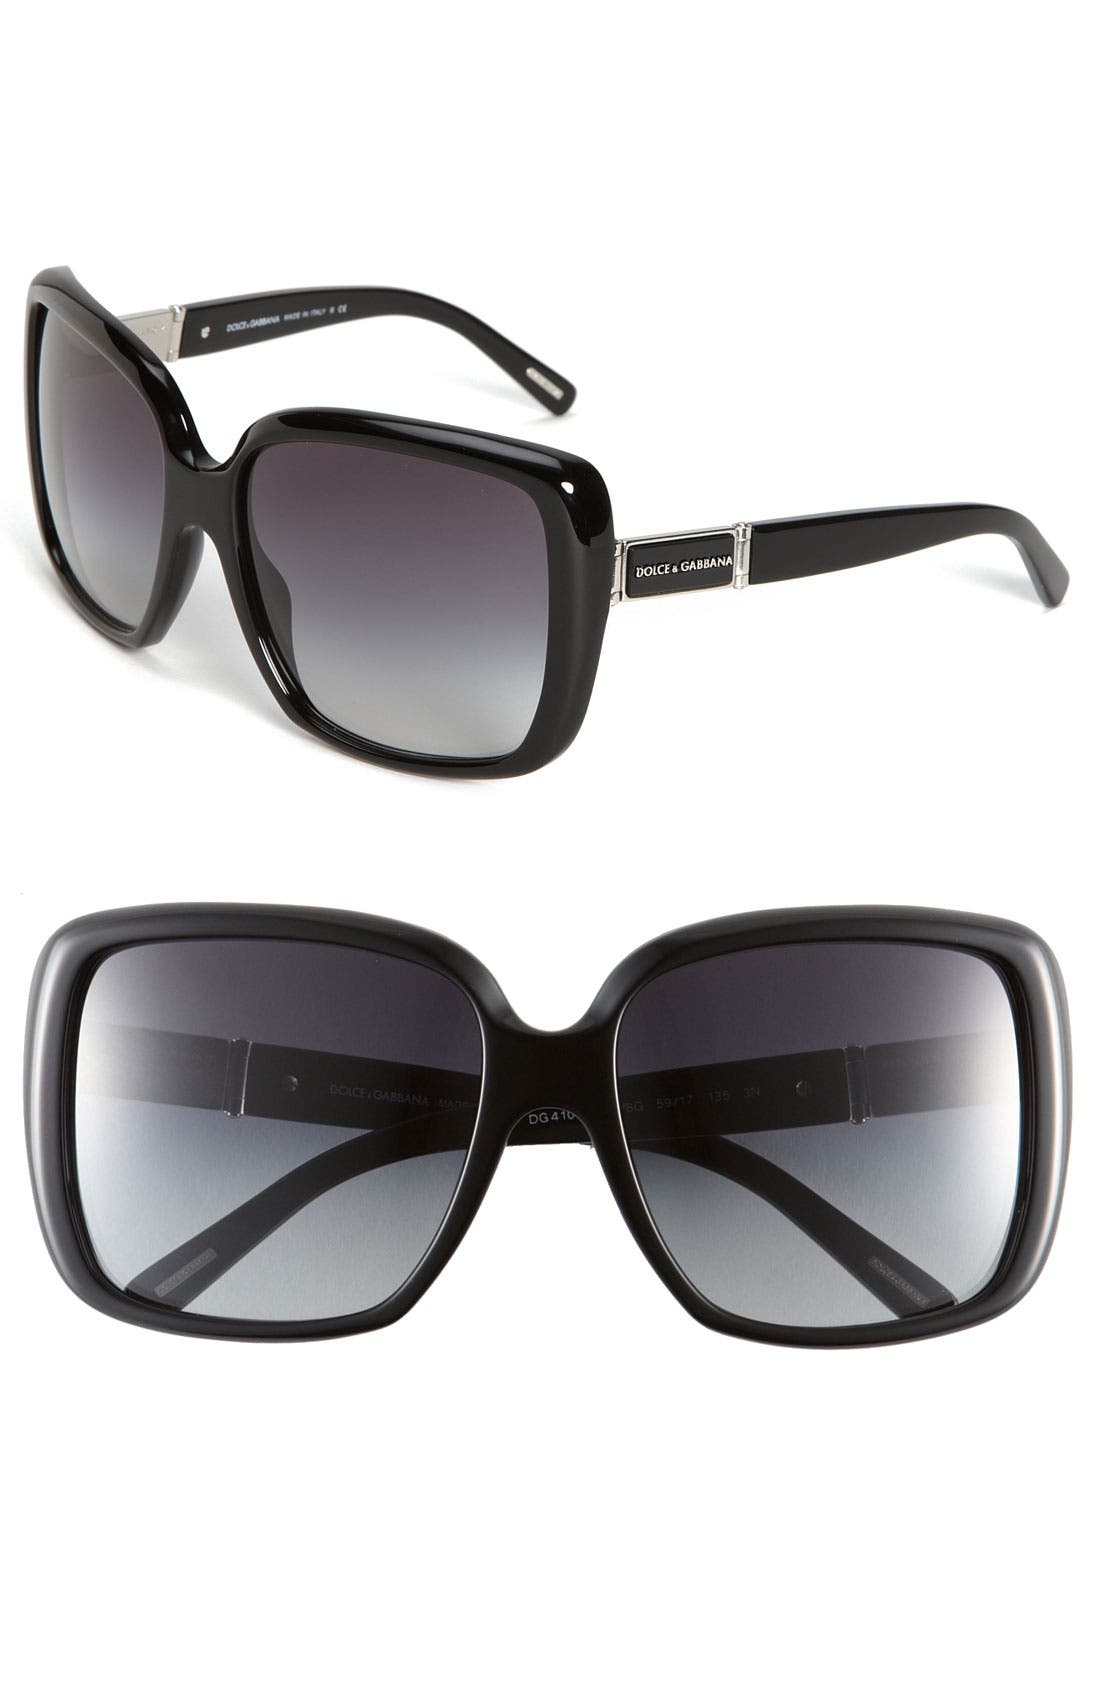 Alternate Image 1 Selected - Dolce&Gabbana 'Glam - Large' Square Sunglasses